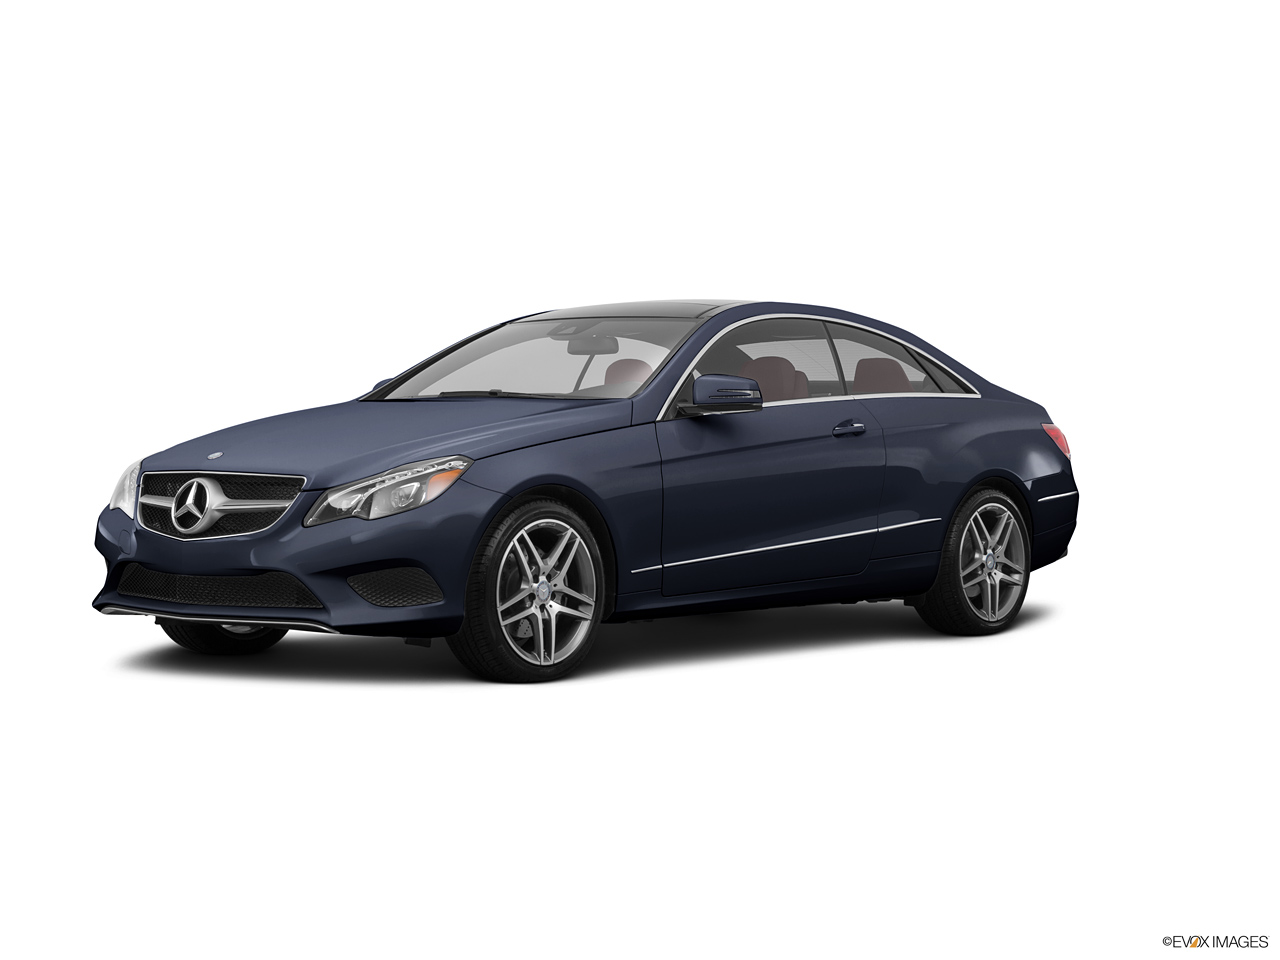 Car pictures list for mercedes benz e class coupe 2016 e for 2016 mercedes benz e class coupe